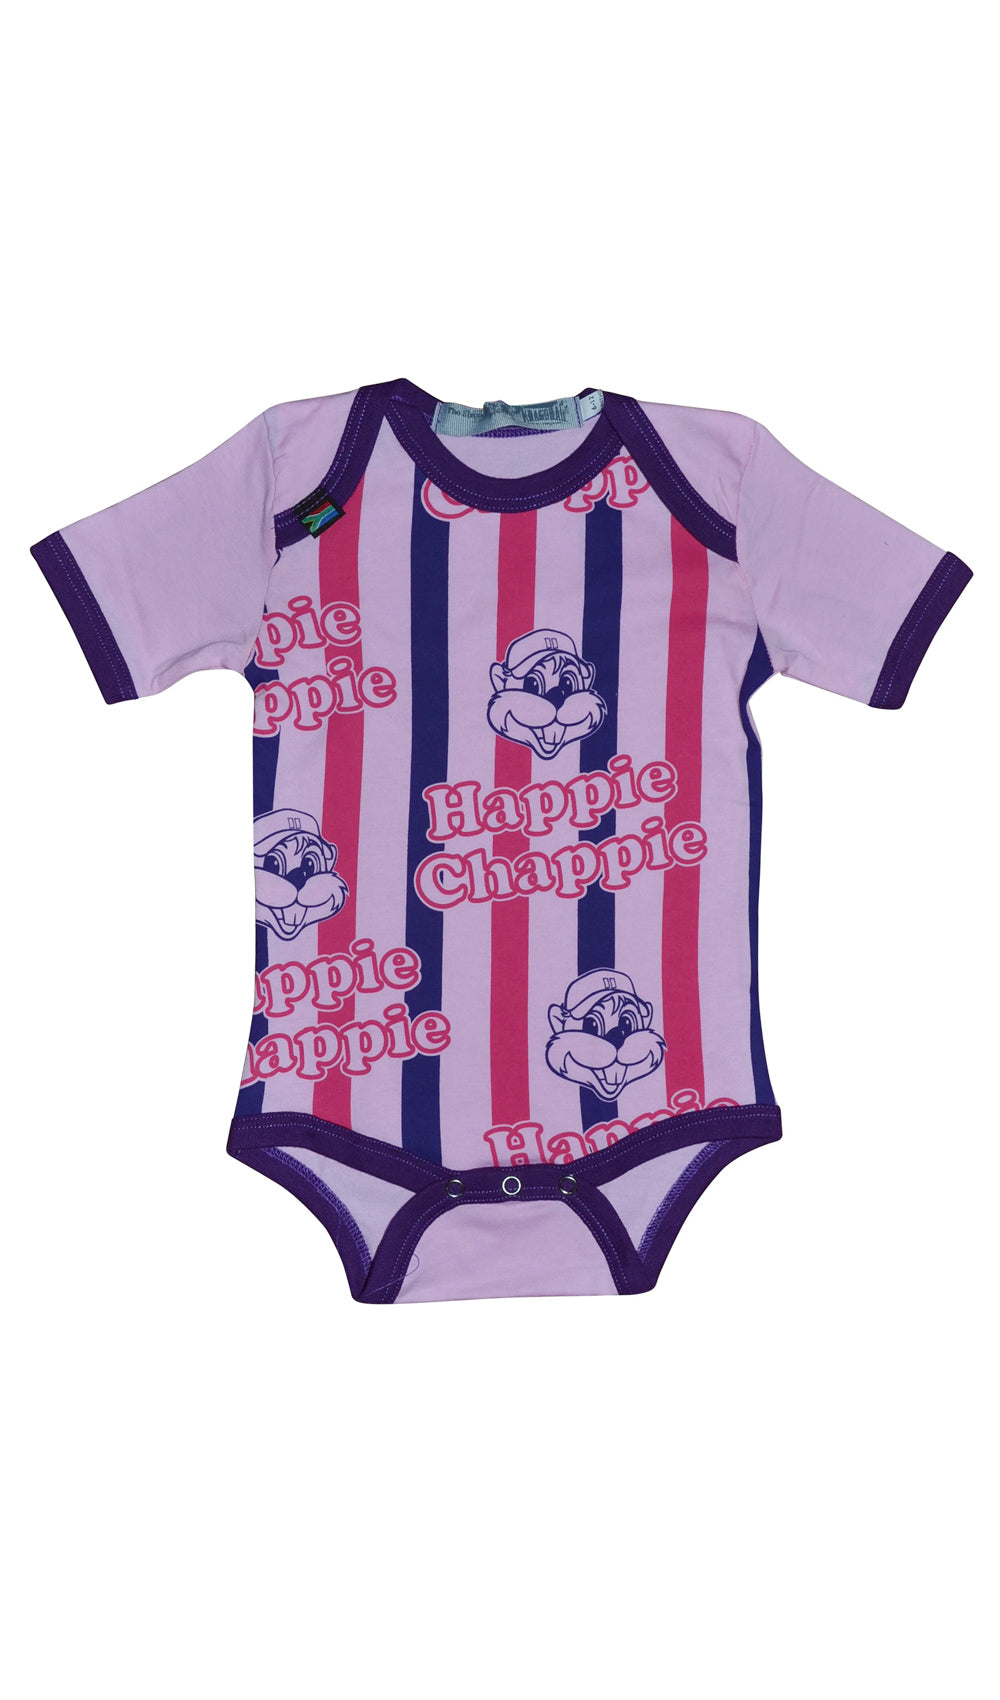 Made in south africa babygrow